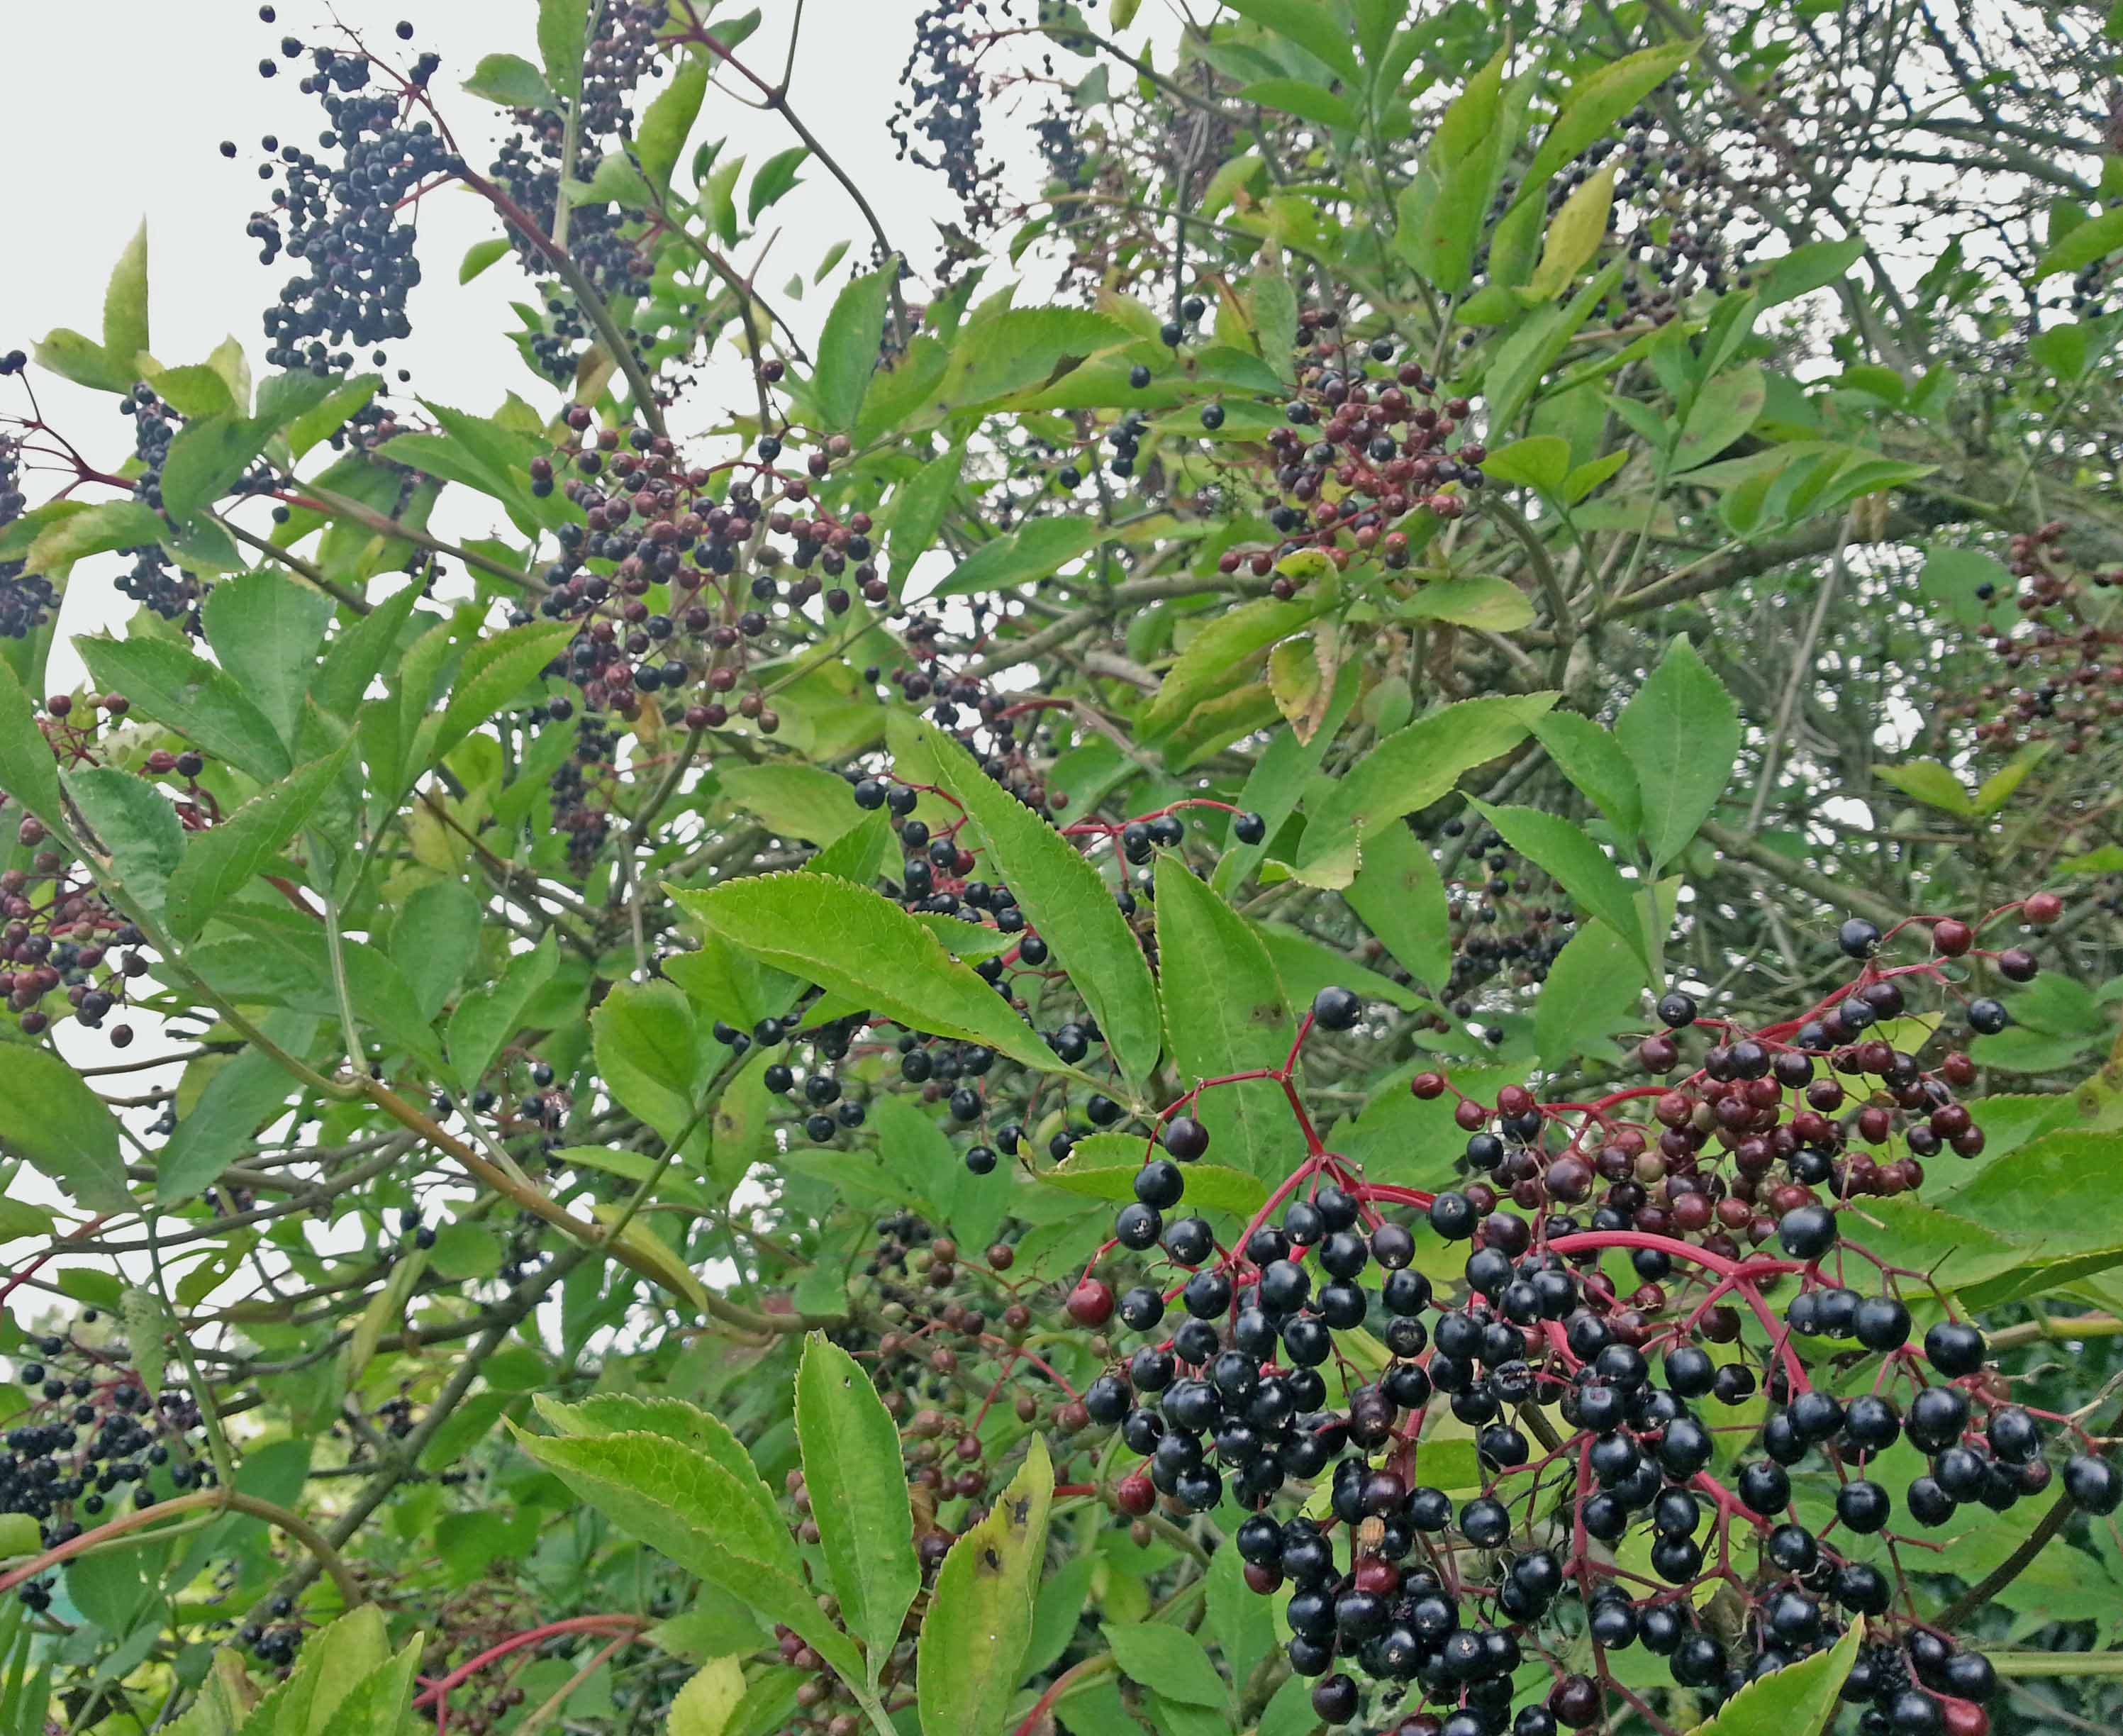 A winter 39 s tonic elderberry syrup recipegreenside up - Fir tree syrup recipe and benefits ...